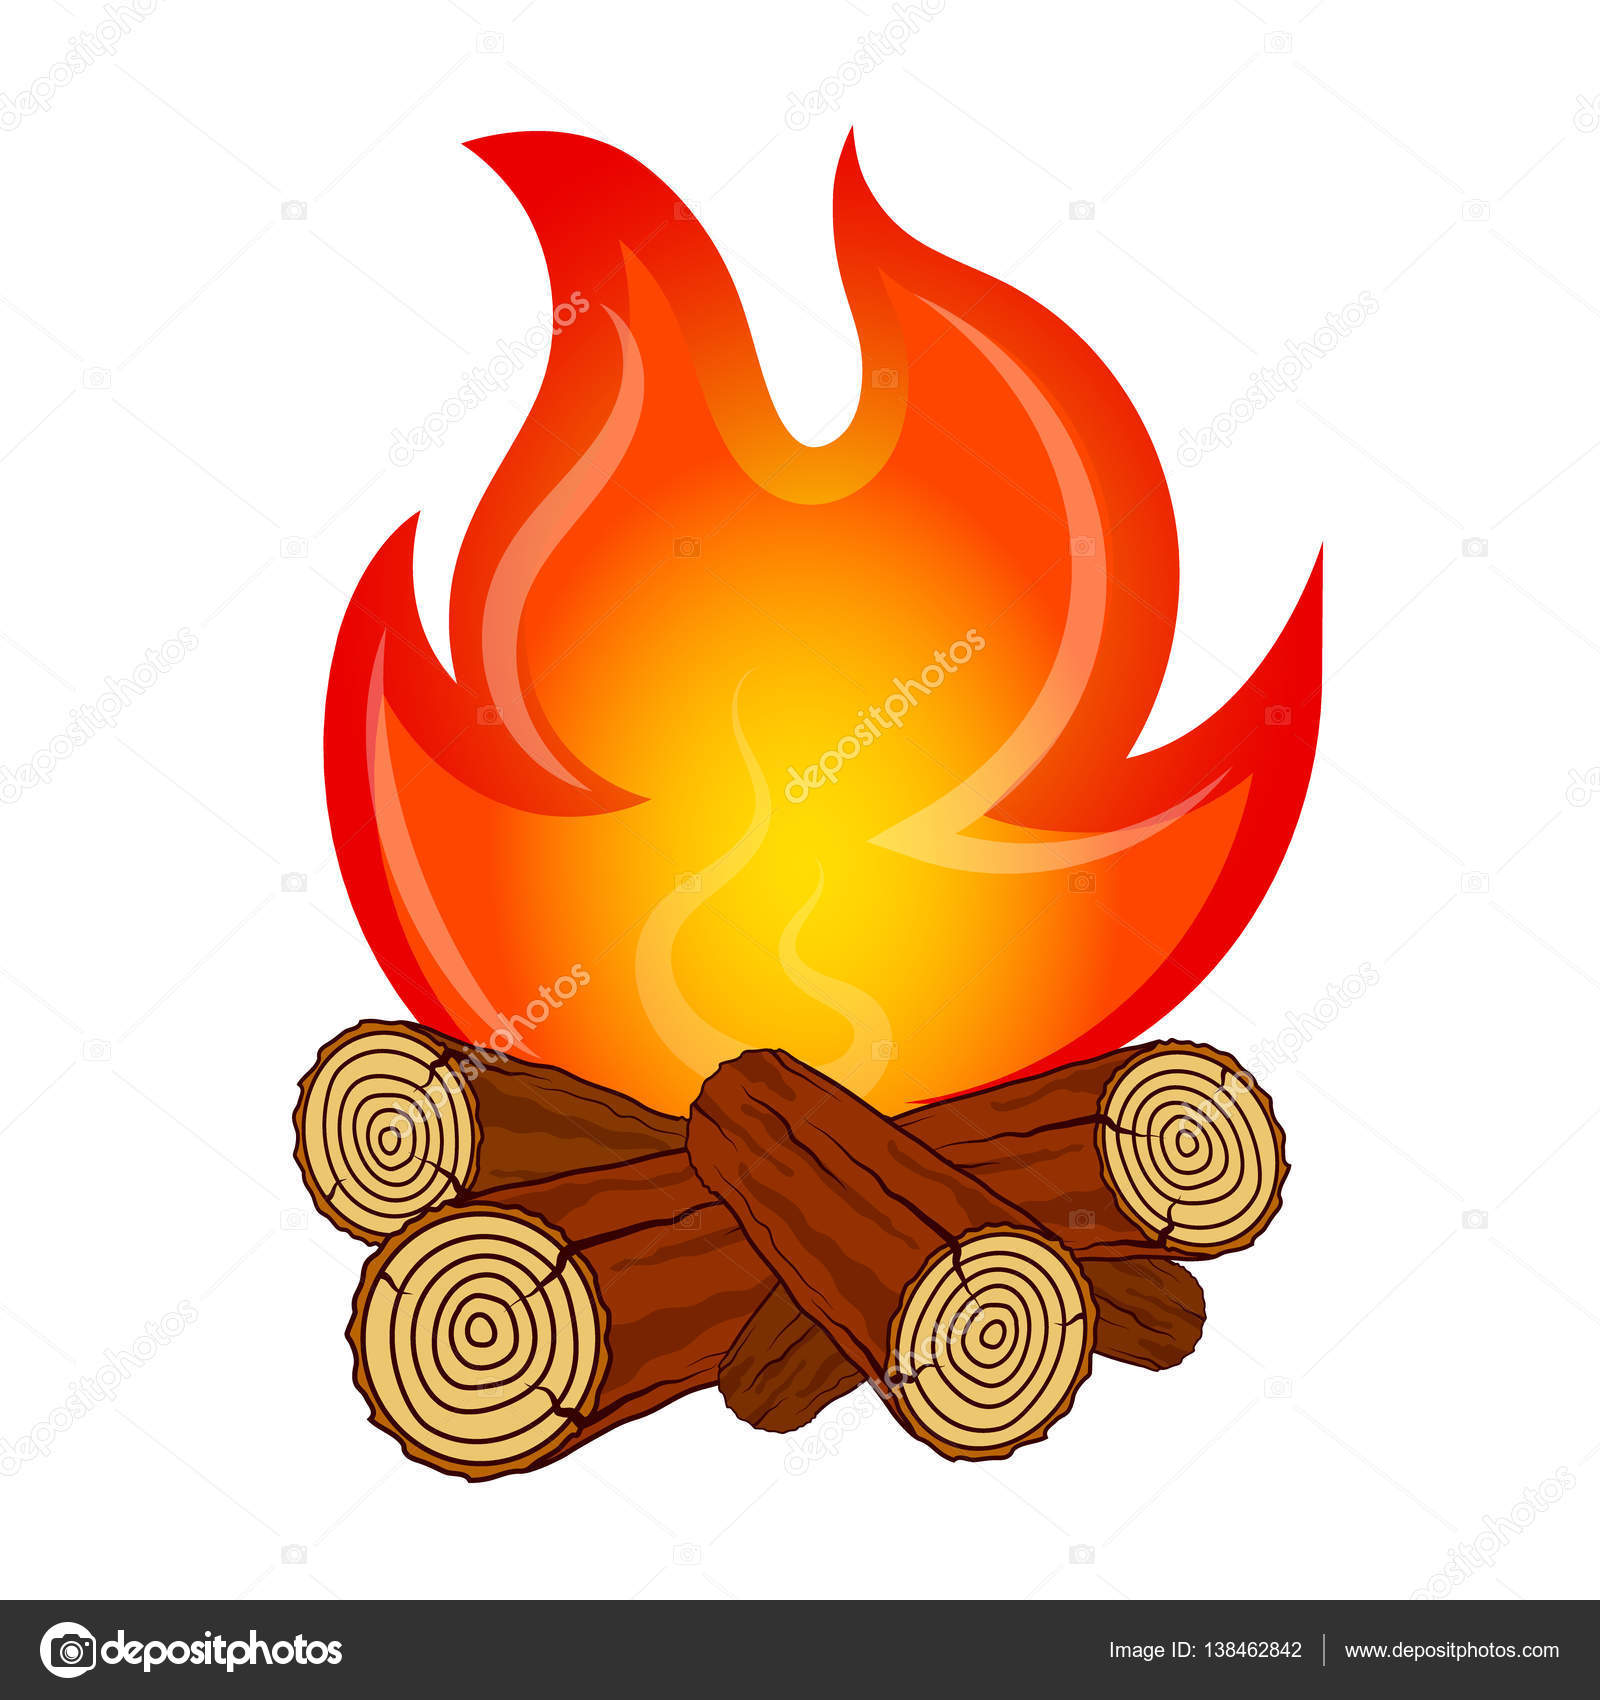 Irc clipart forms png Firewood clipart fire wood - 168 transparent clip arts ... png